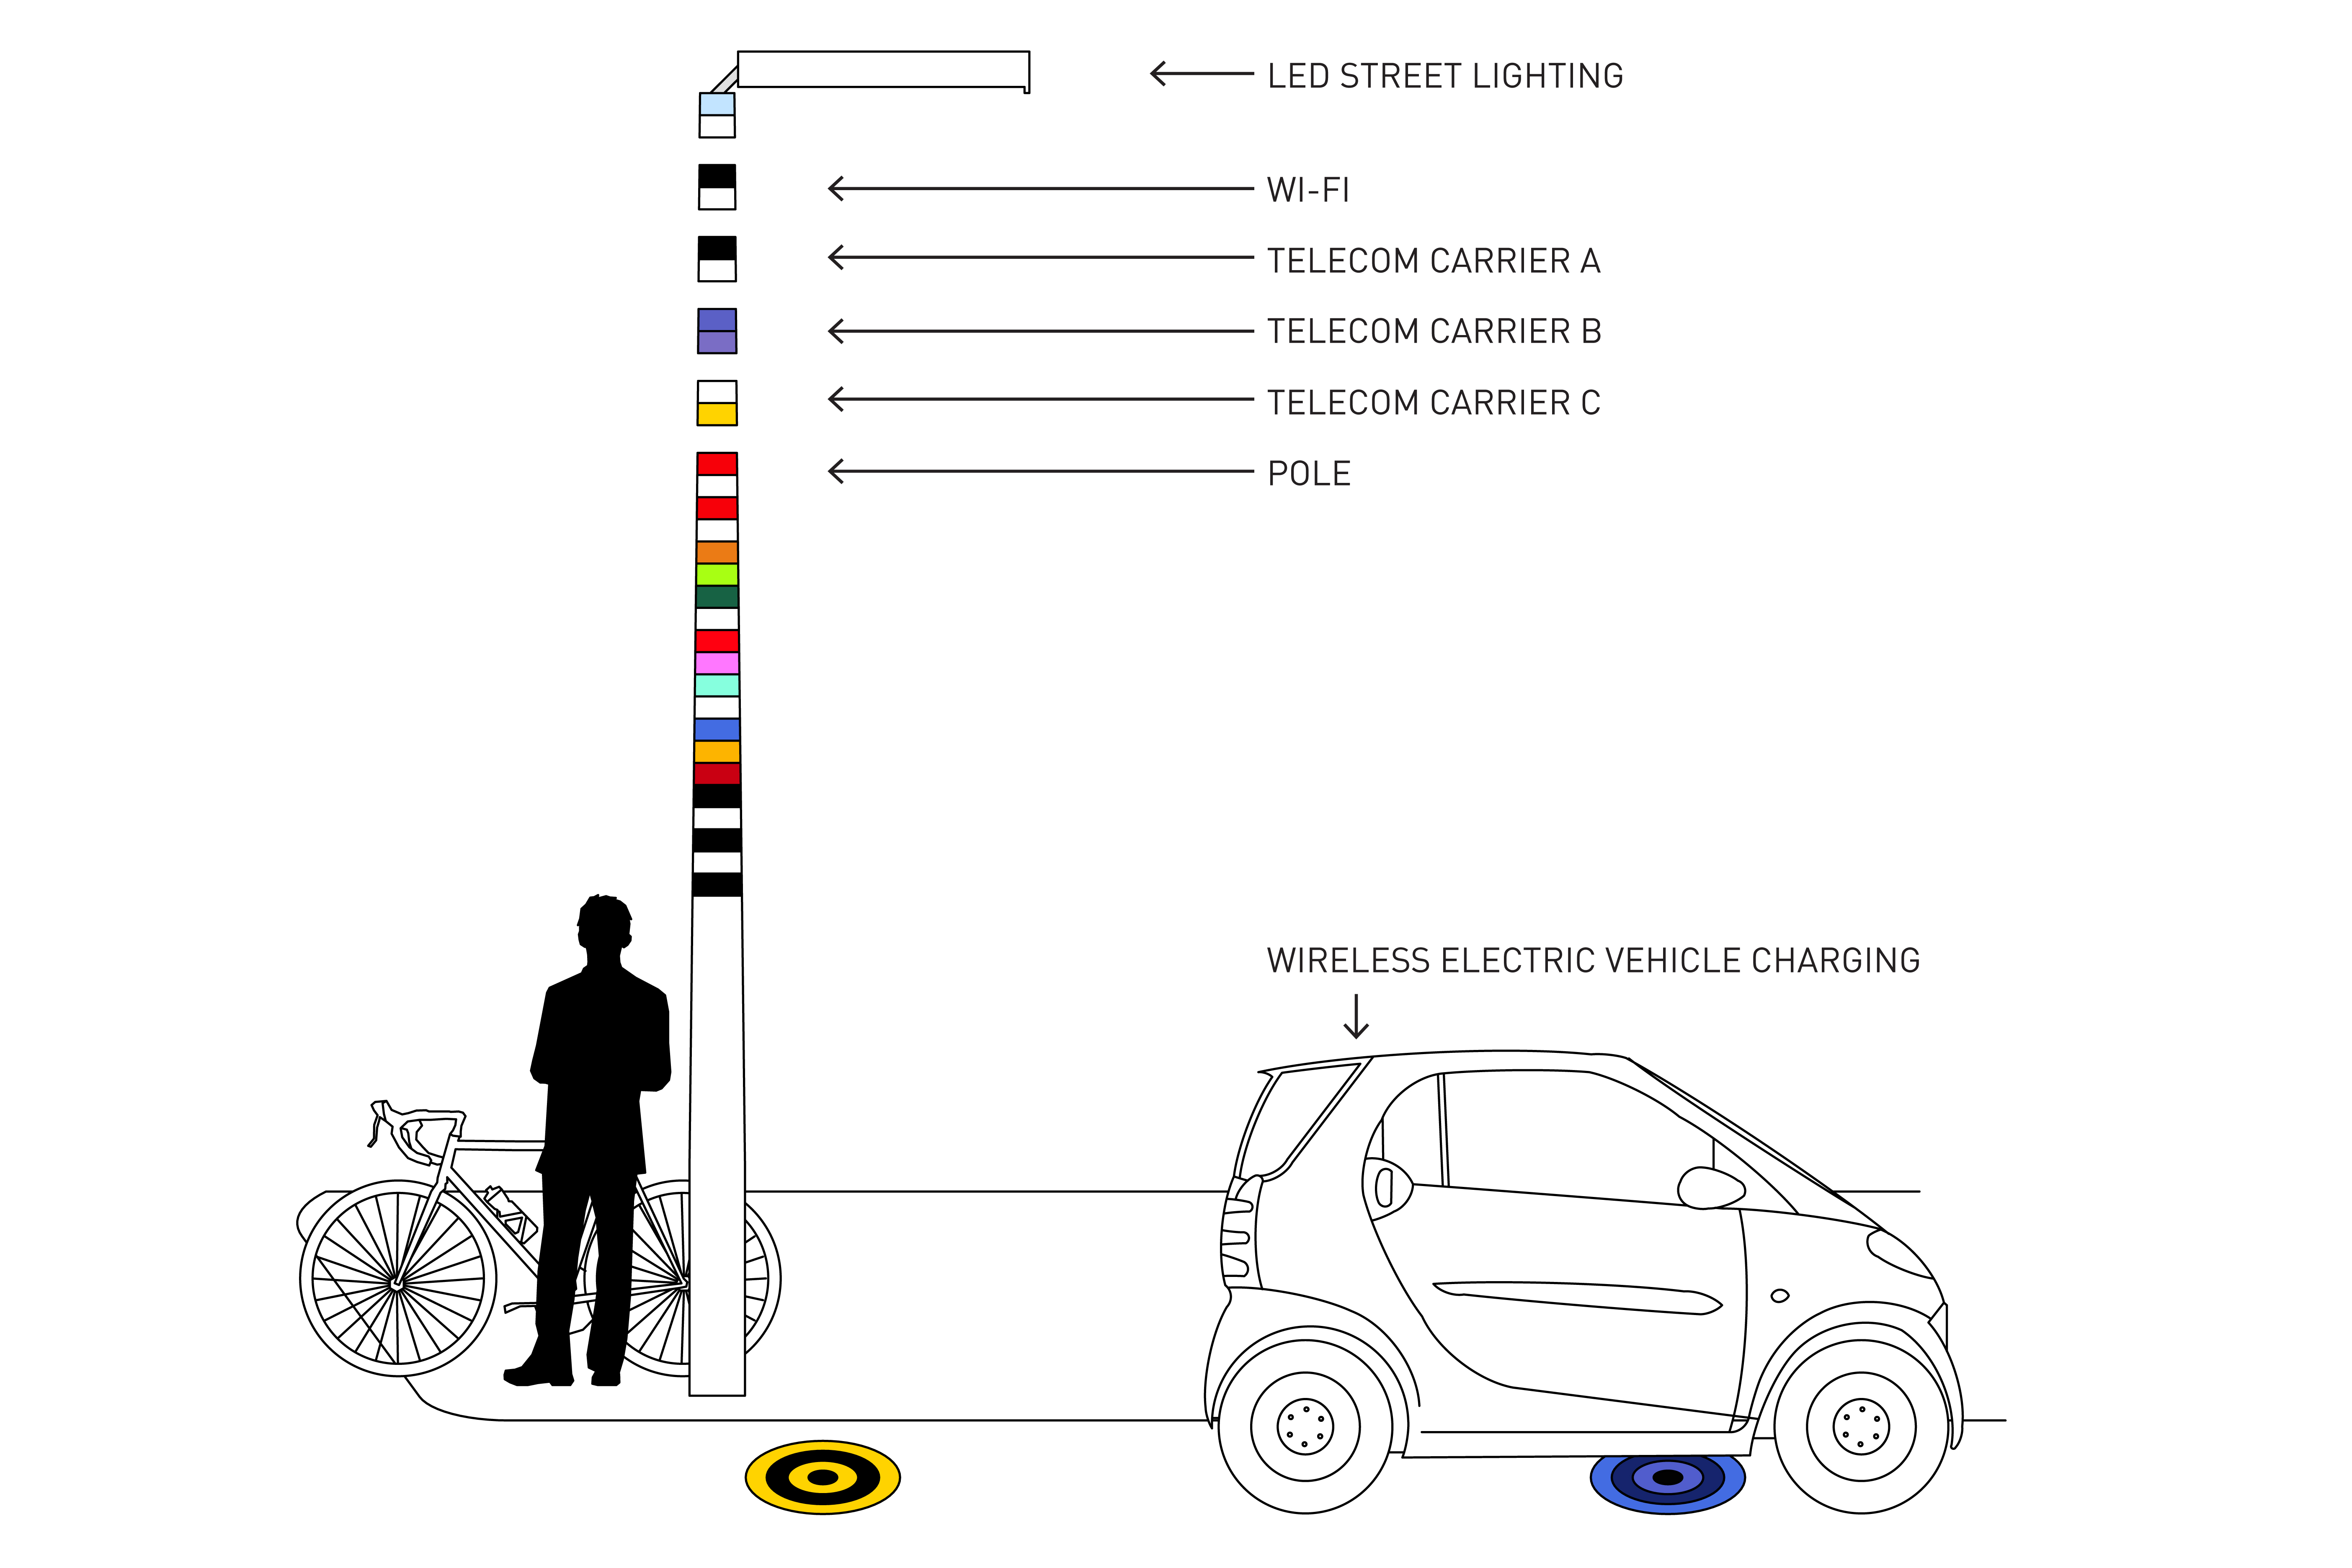 V Pole A Wi Fi Electric Vehicle Charging Lamp Post Of